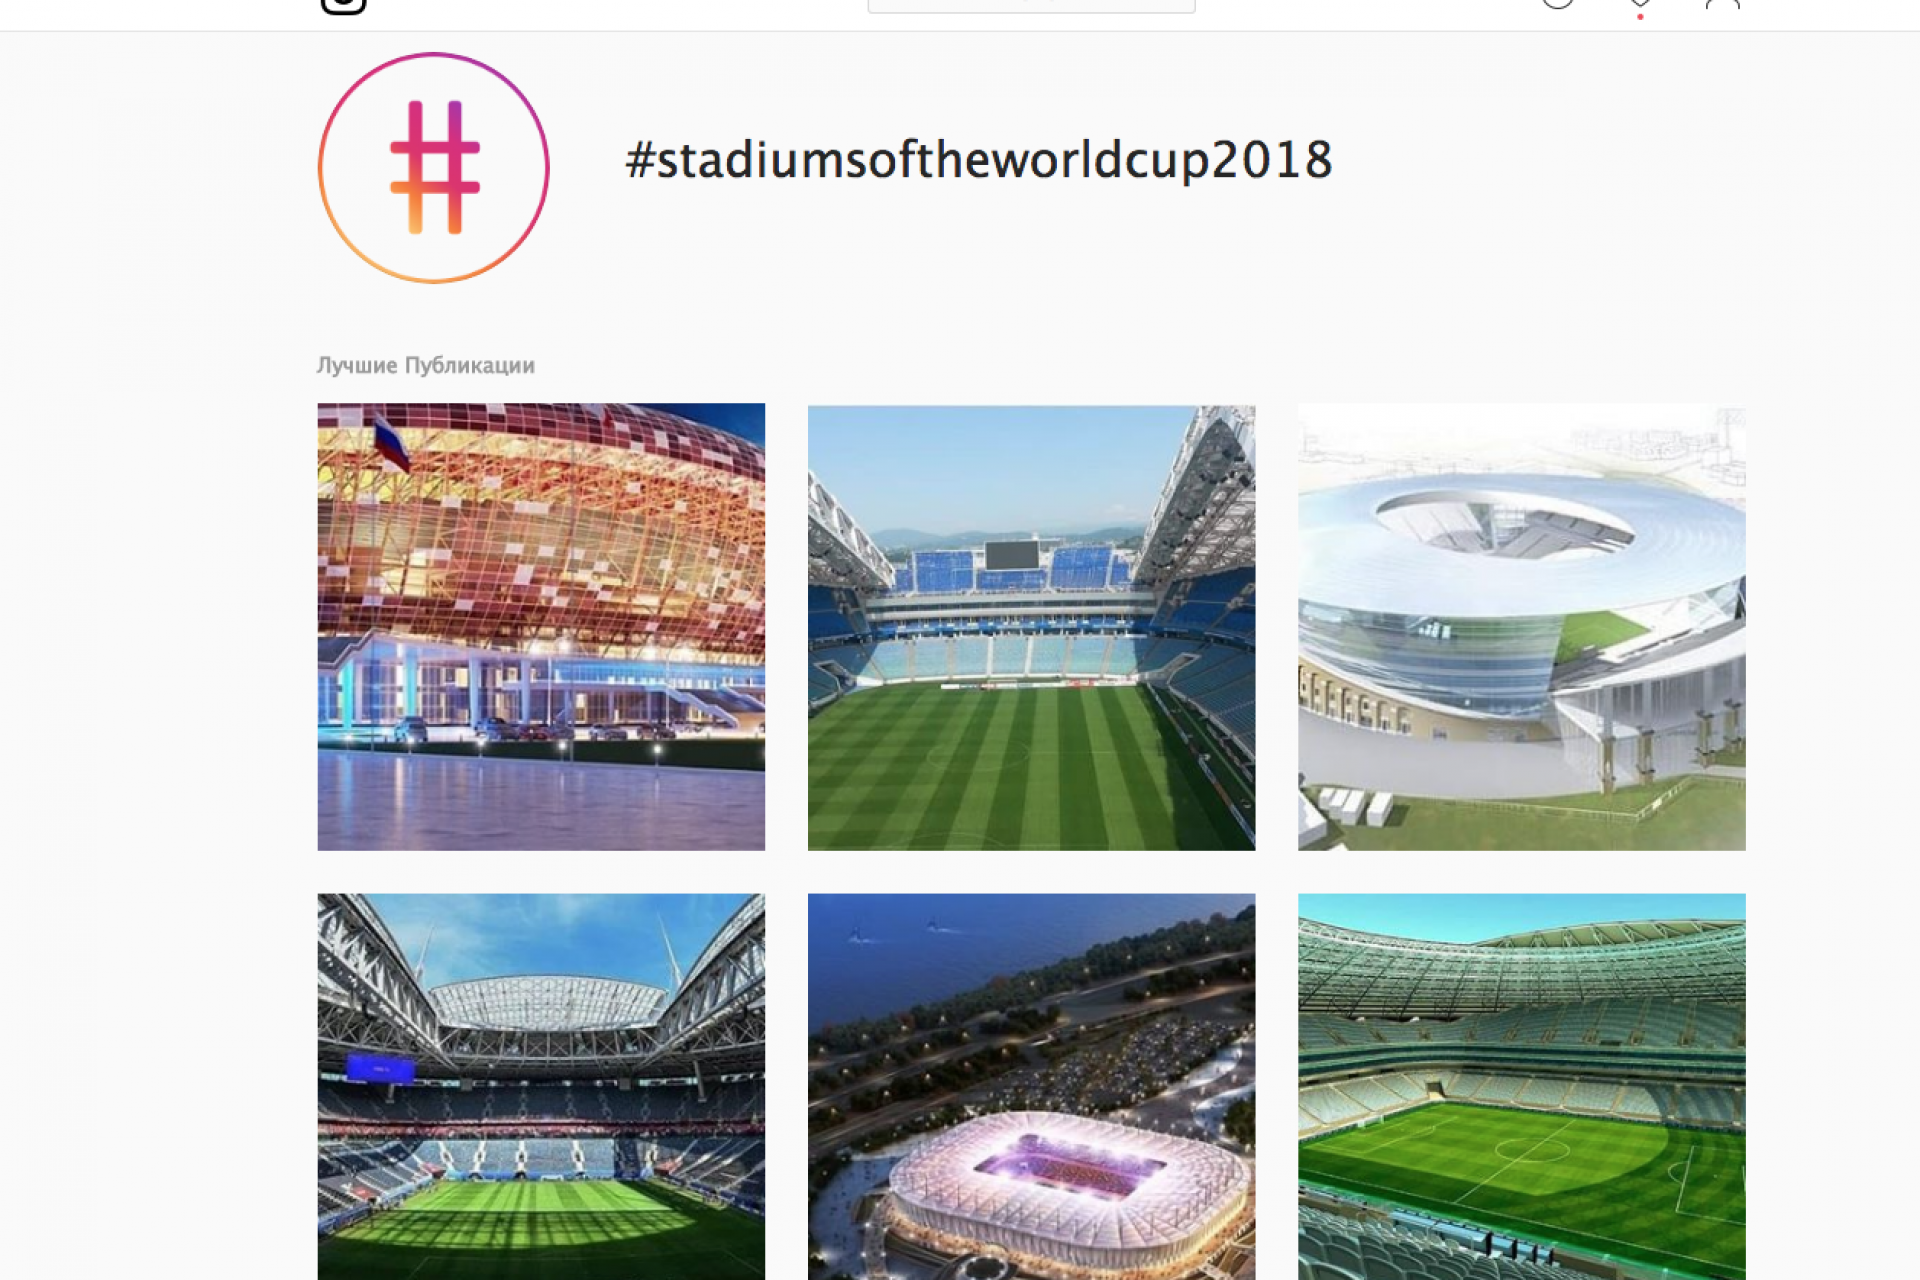 Get more information about the 2018 World Cup stadiums using the hashtag: #stadiumsoftheworldcup2018